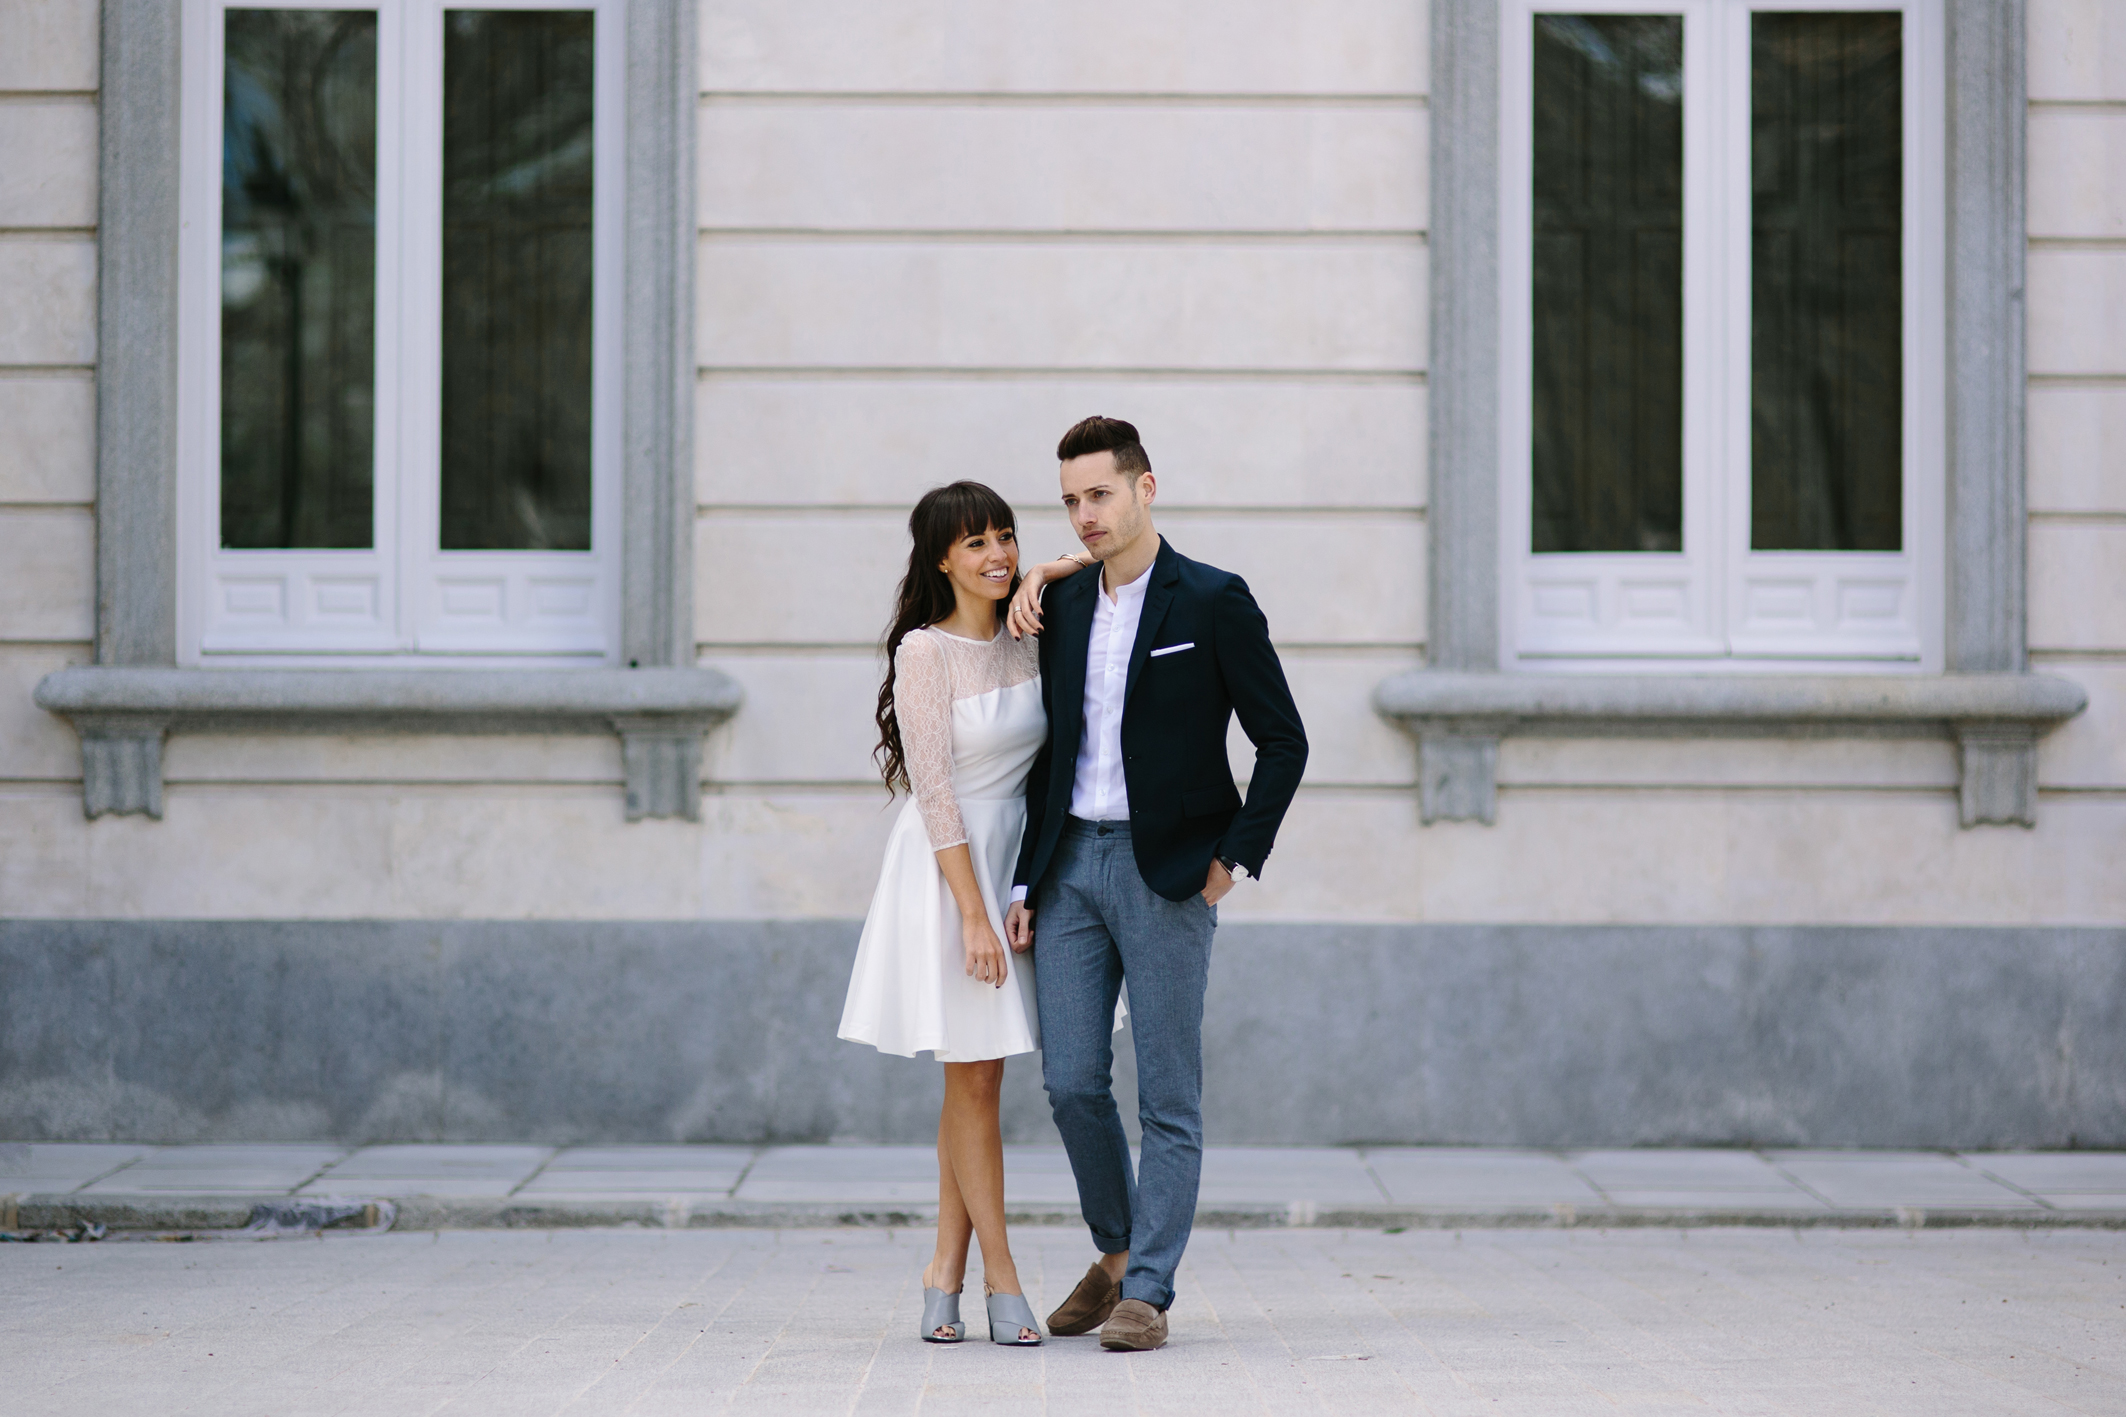 Ceremony couple, street style, lookbook, wedding outfit